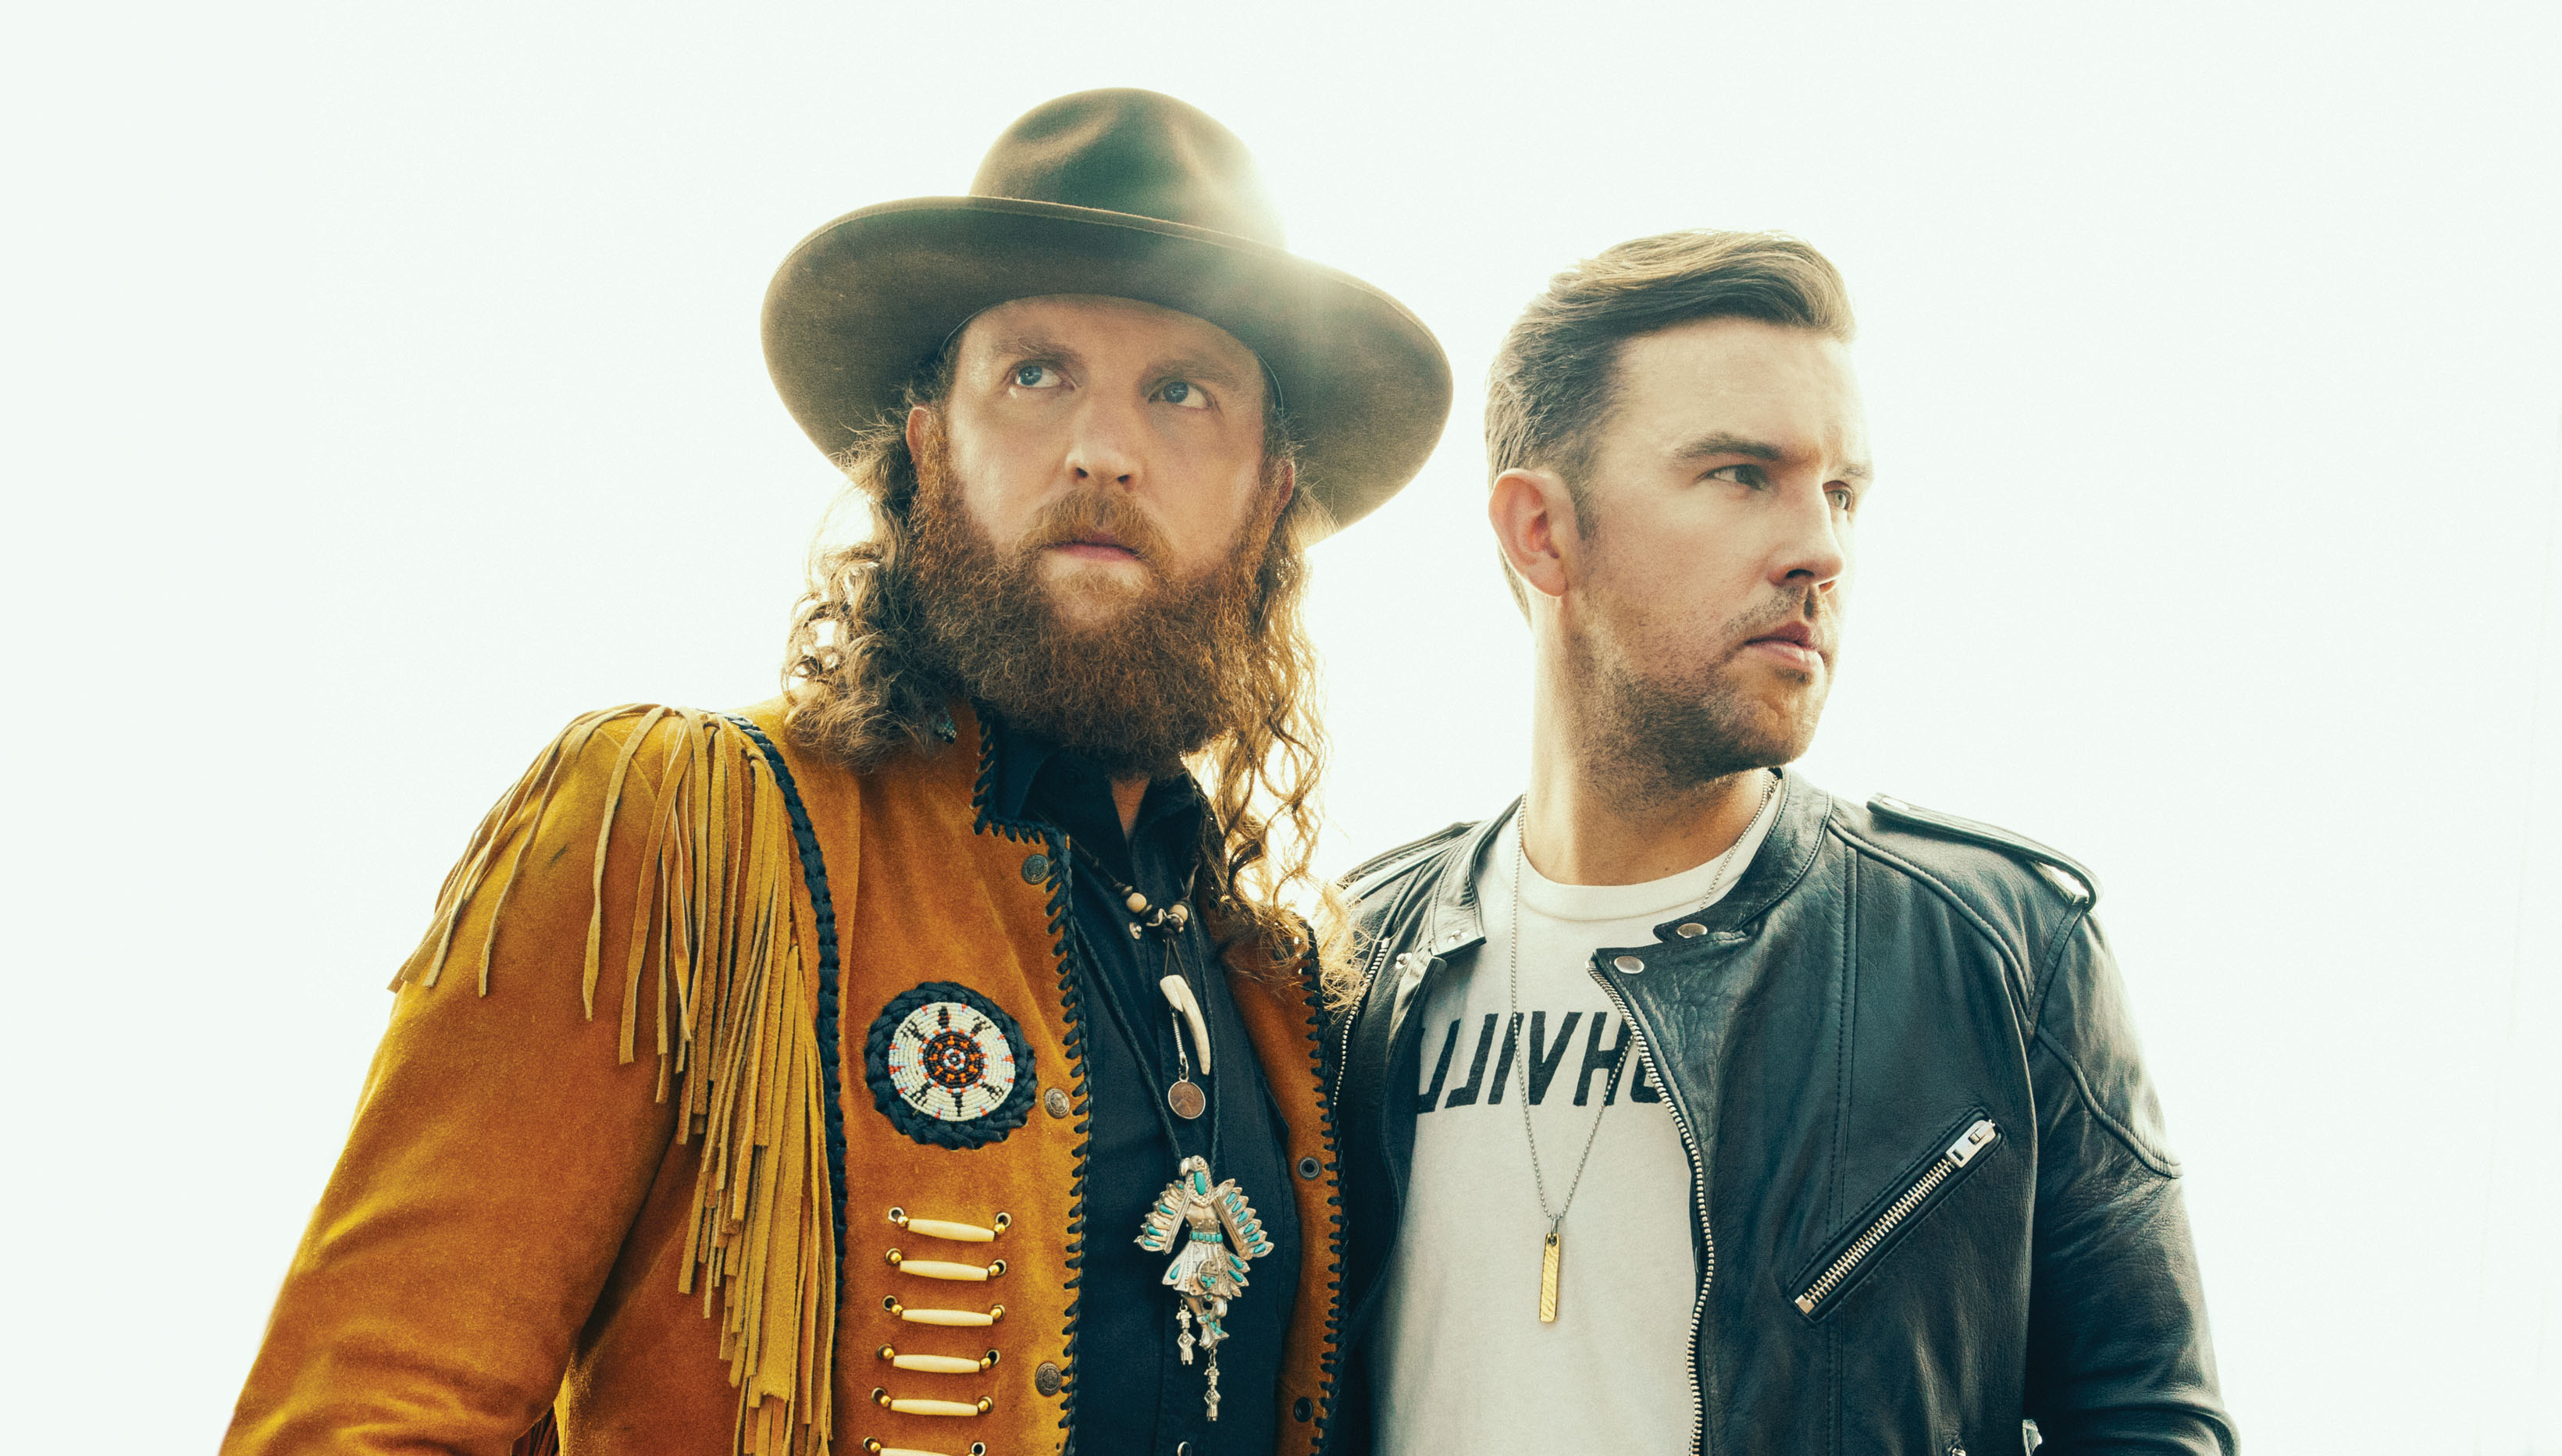 maxwell brothers osborne announce local concerts the blade. Black Bedroom Furniture Sets. Home Design Ideas